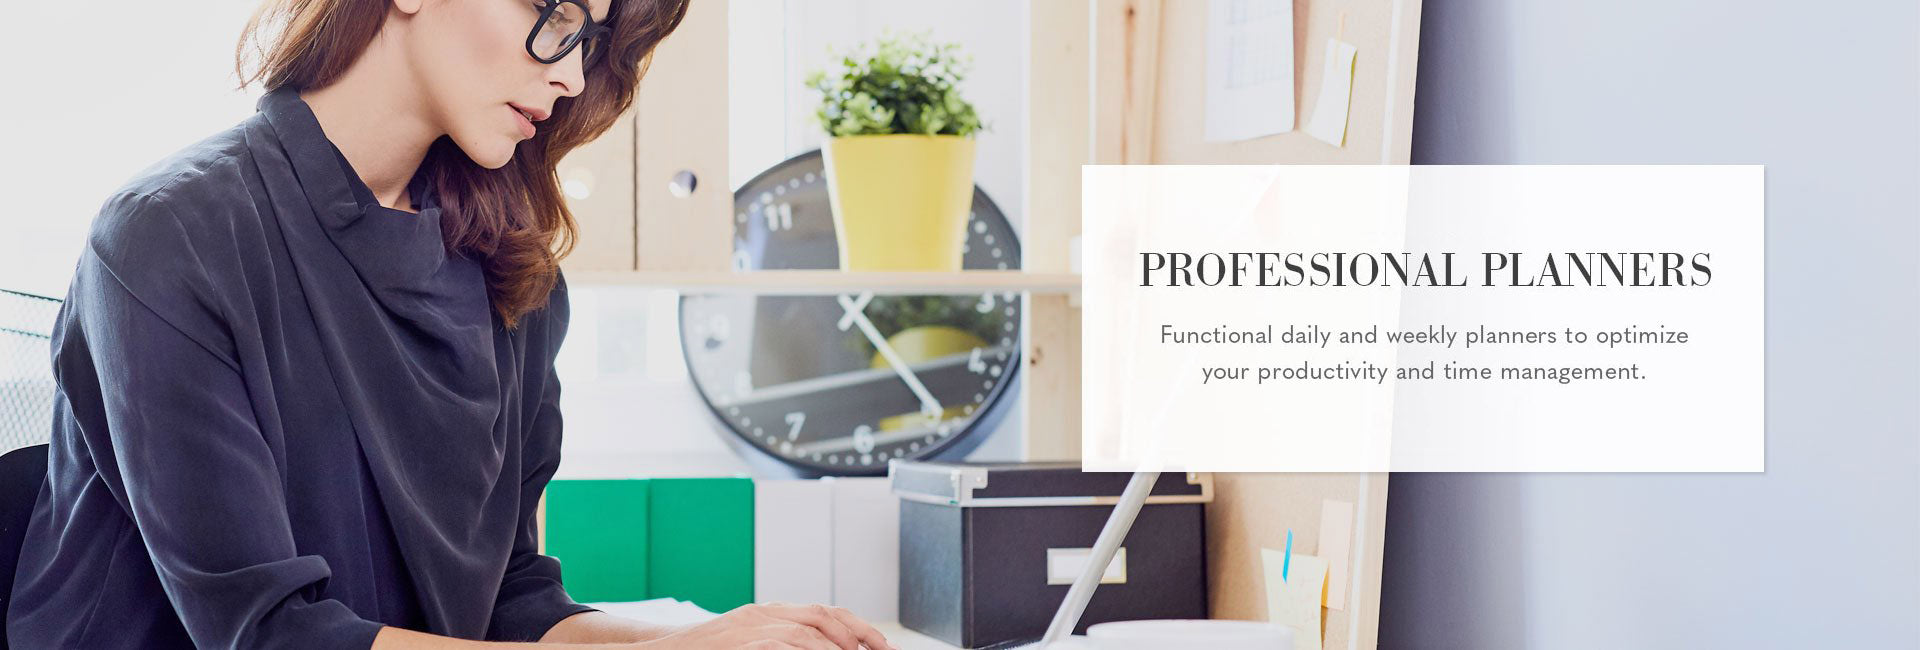 Shop for Professional Planners on  Bluesky.com